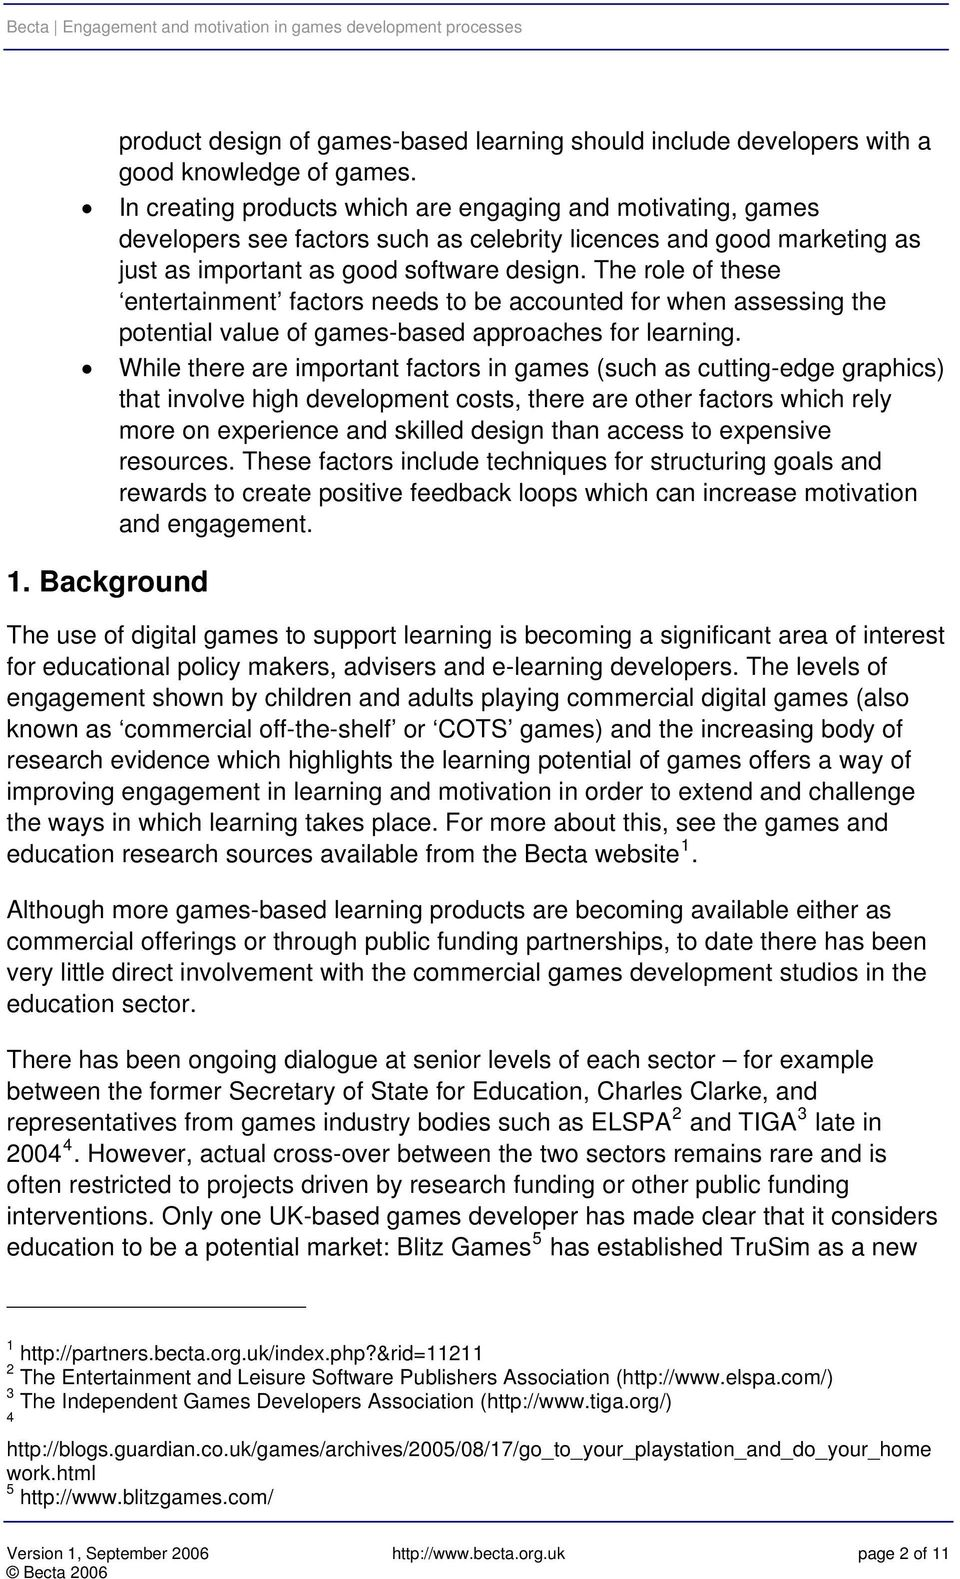 The role of these entertainment factors needs to be accounted for when assessing the potential value of games-based approaches for learning.